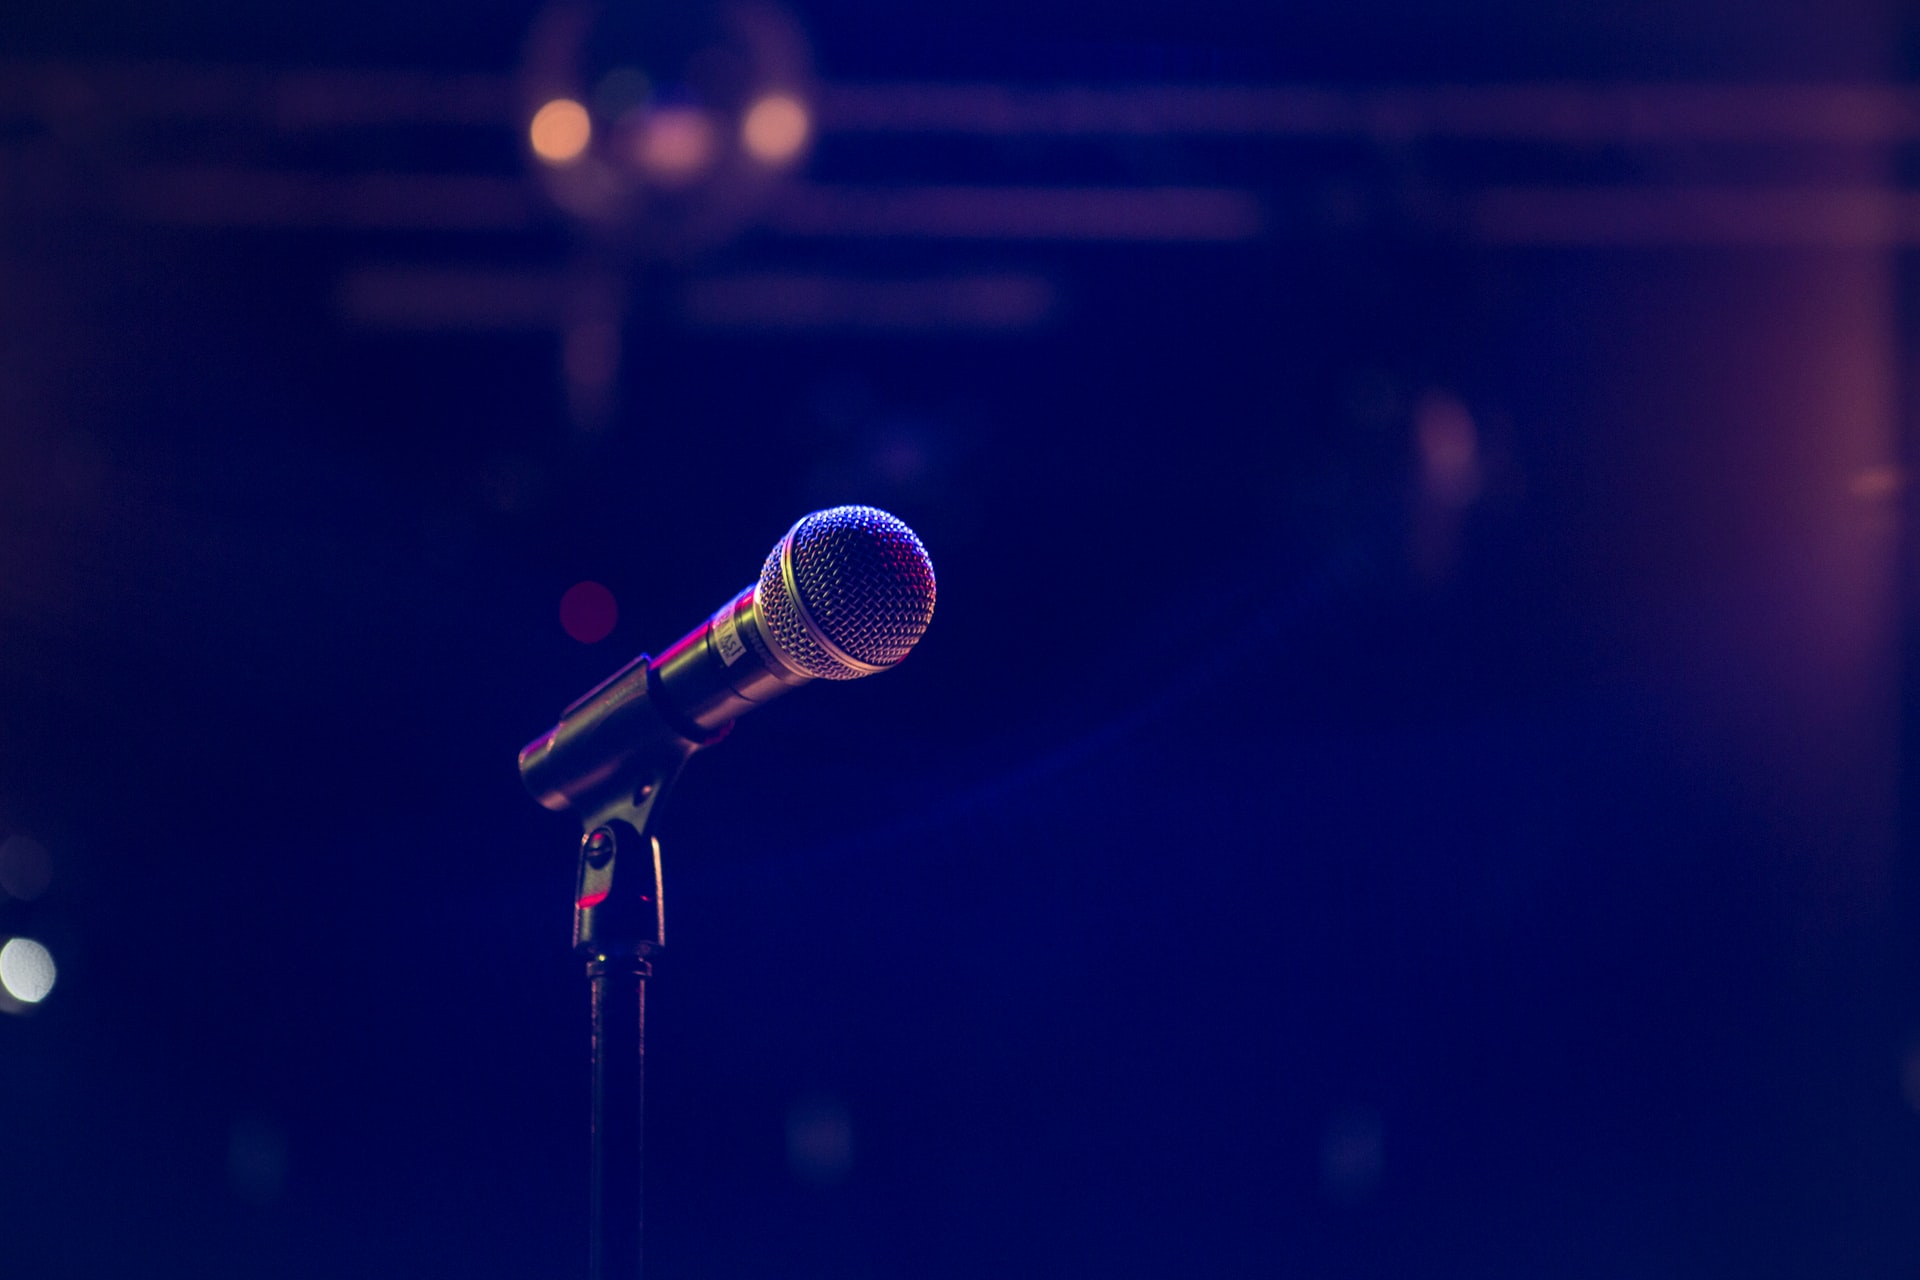 A microphone on a dark stage